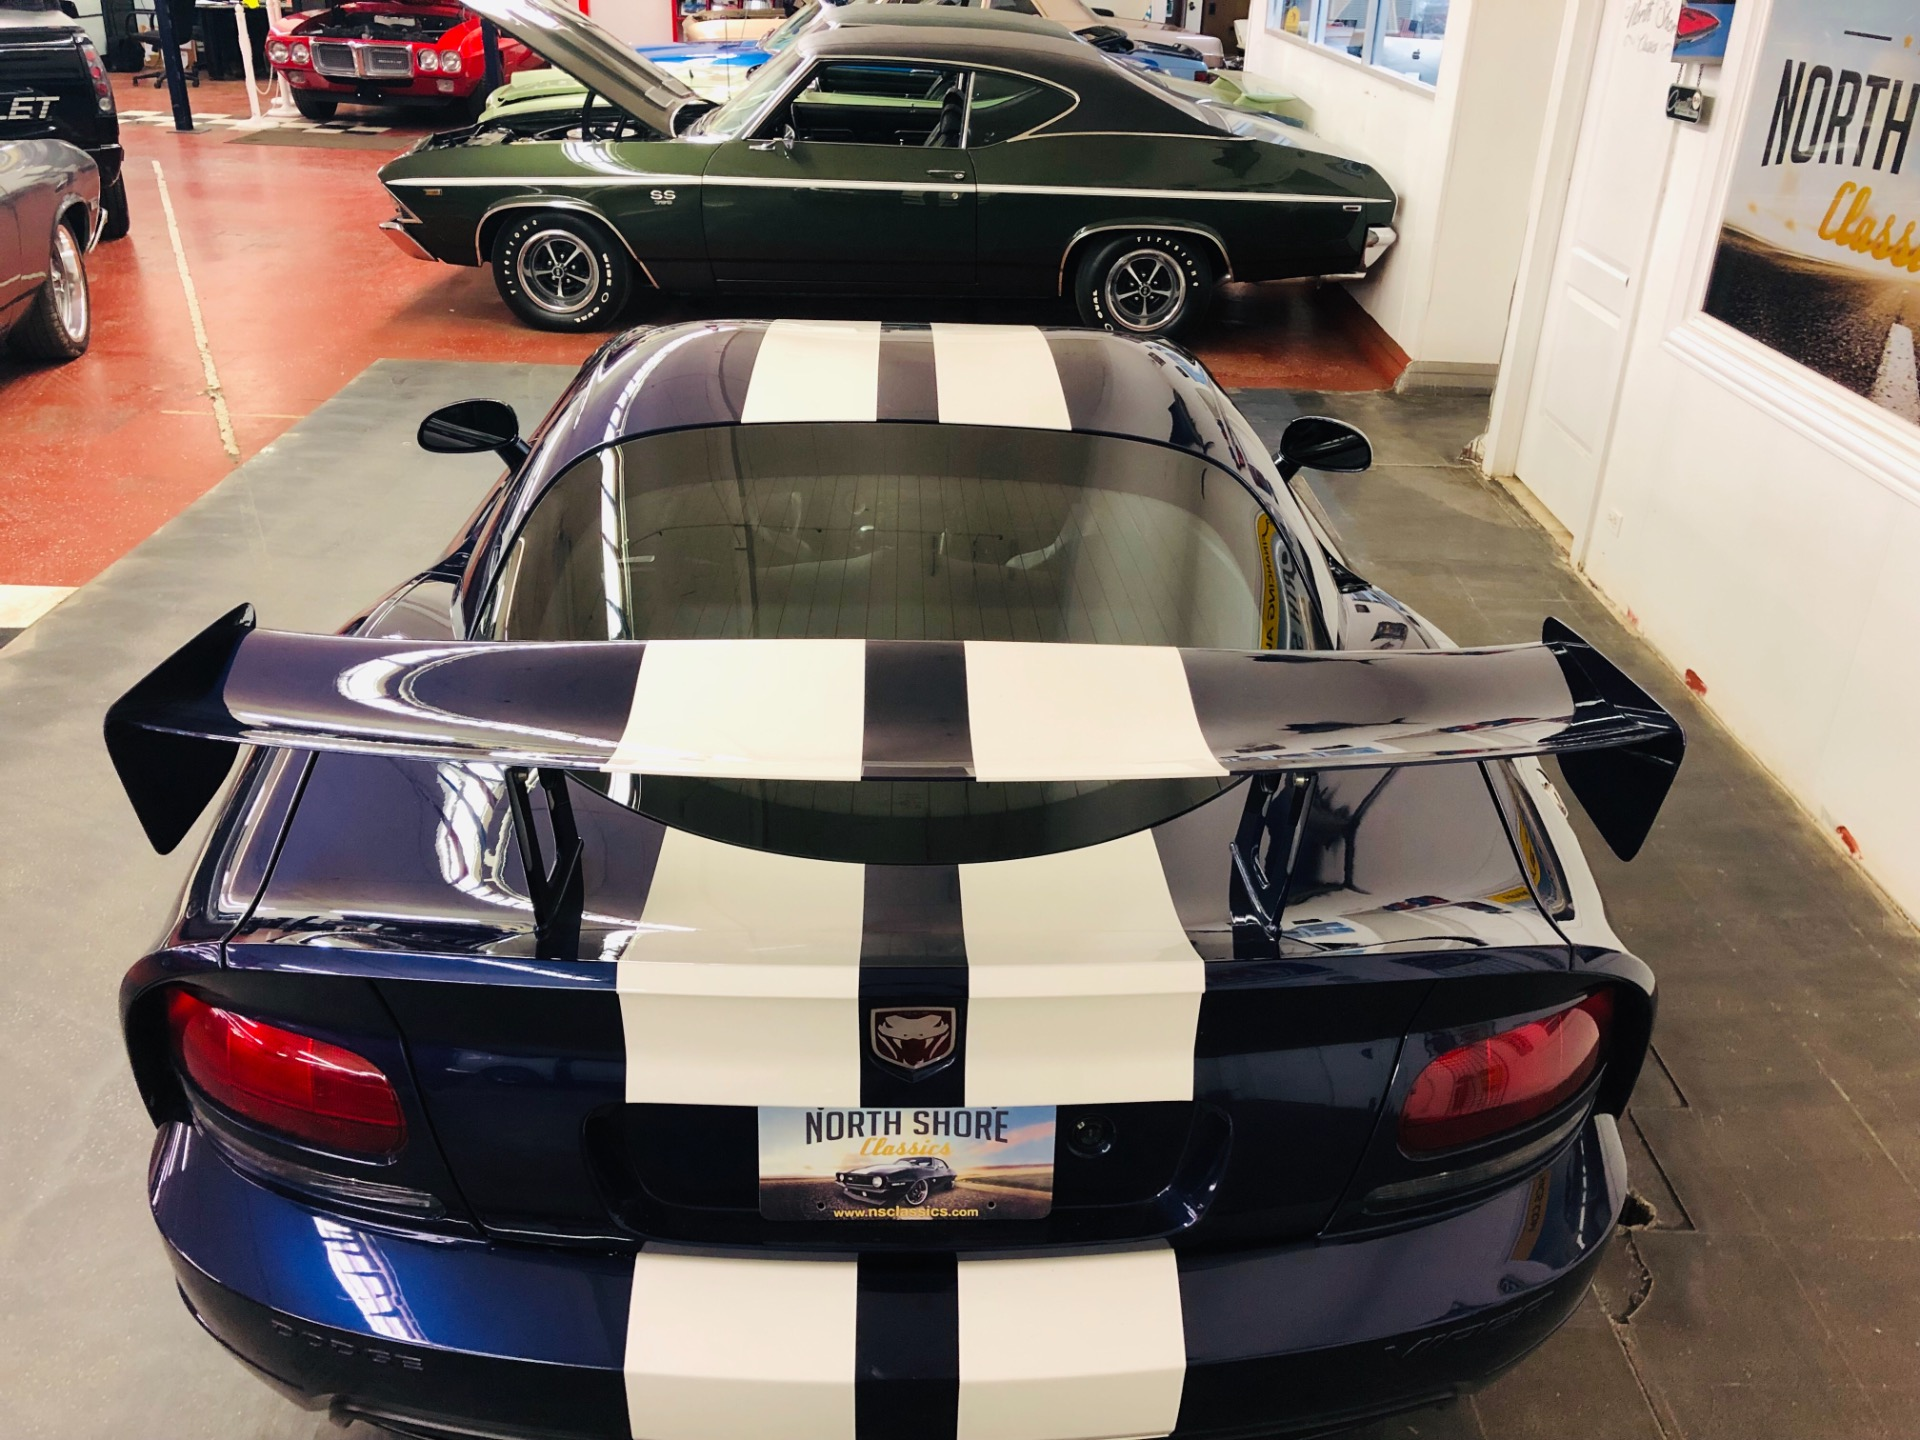 Used 2008 Dodge Viper -SRT-10-LIKE NEW-ONE OWNER-LOW MILES-CLEAN CARFAX-SPORT COUPE- | Mundelein, IL